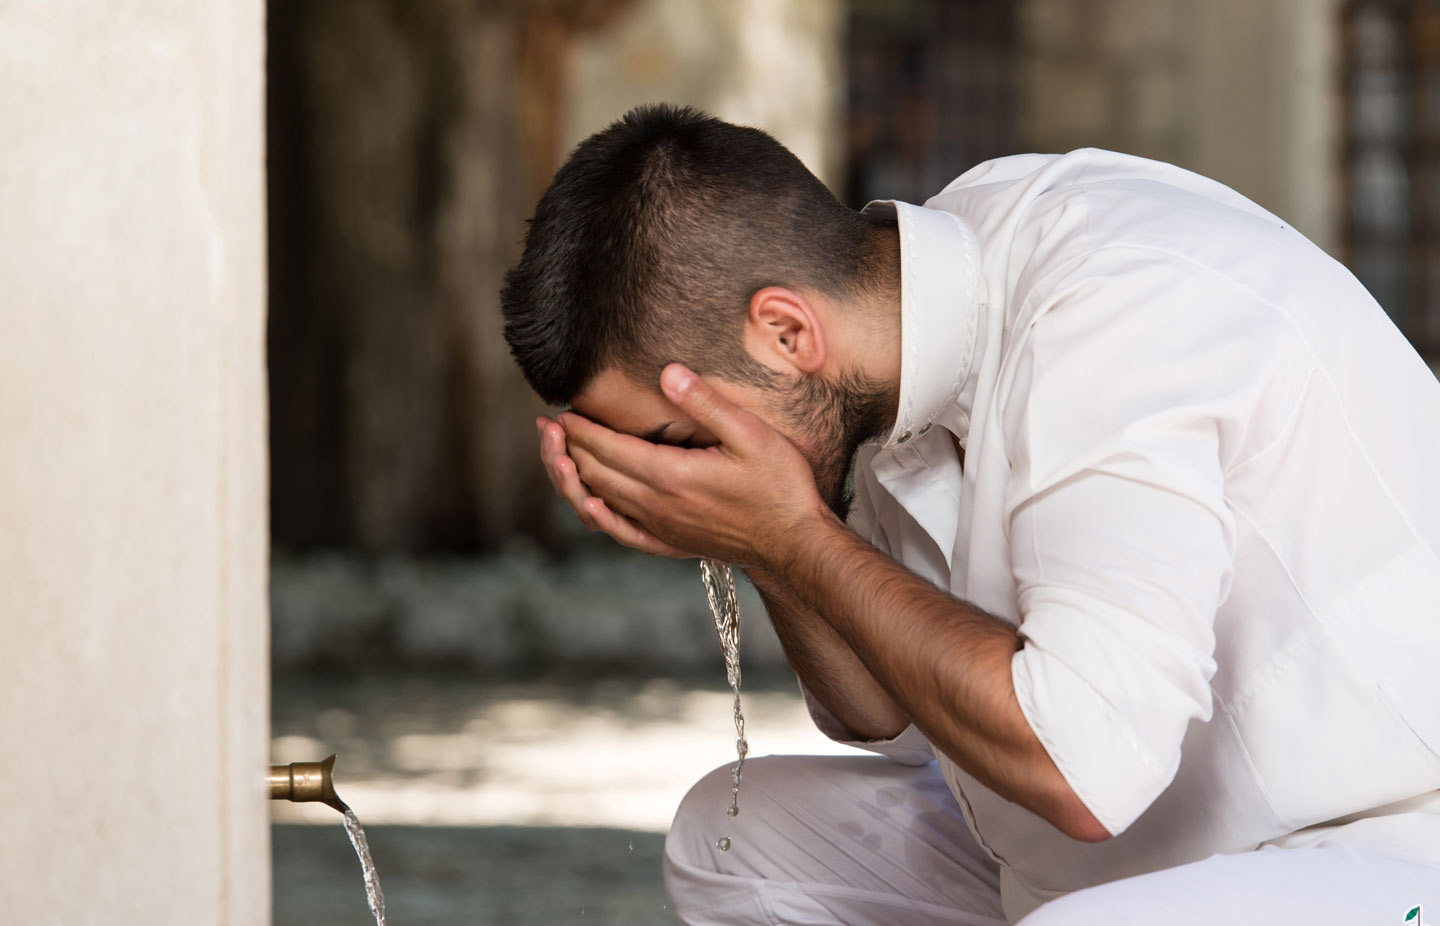 someone washes his face during ablution.